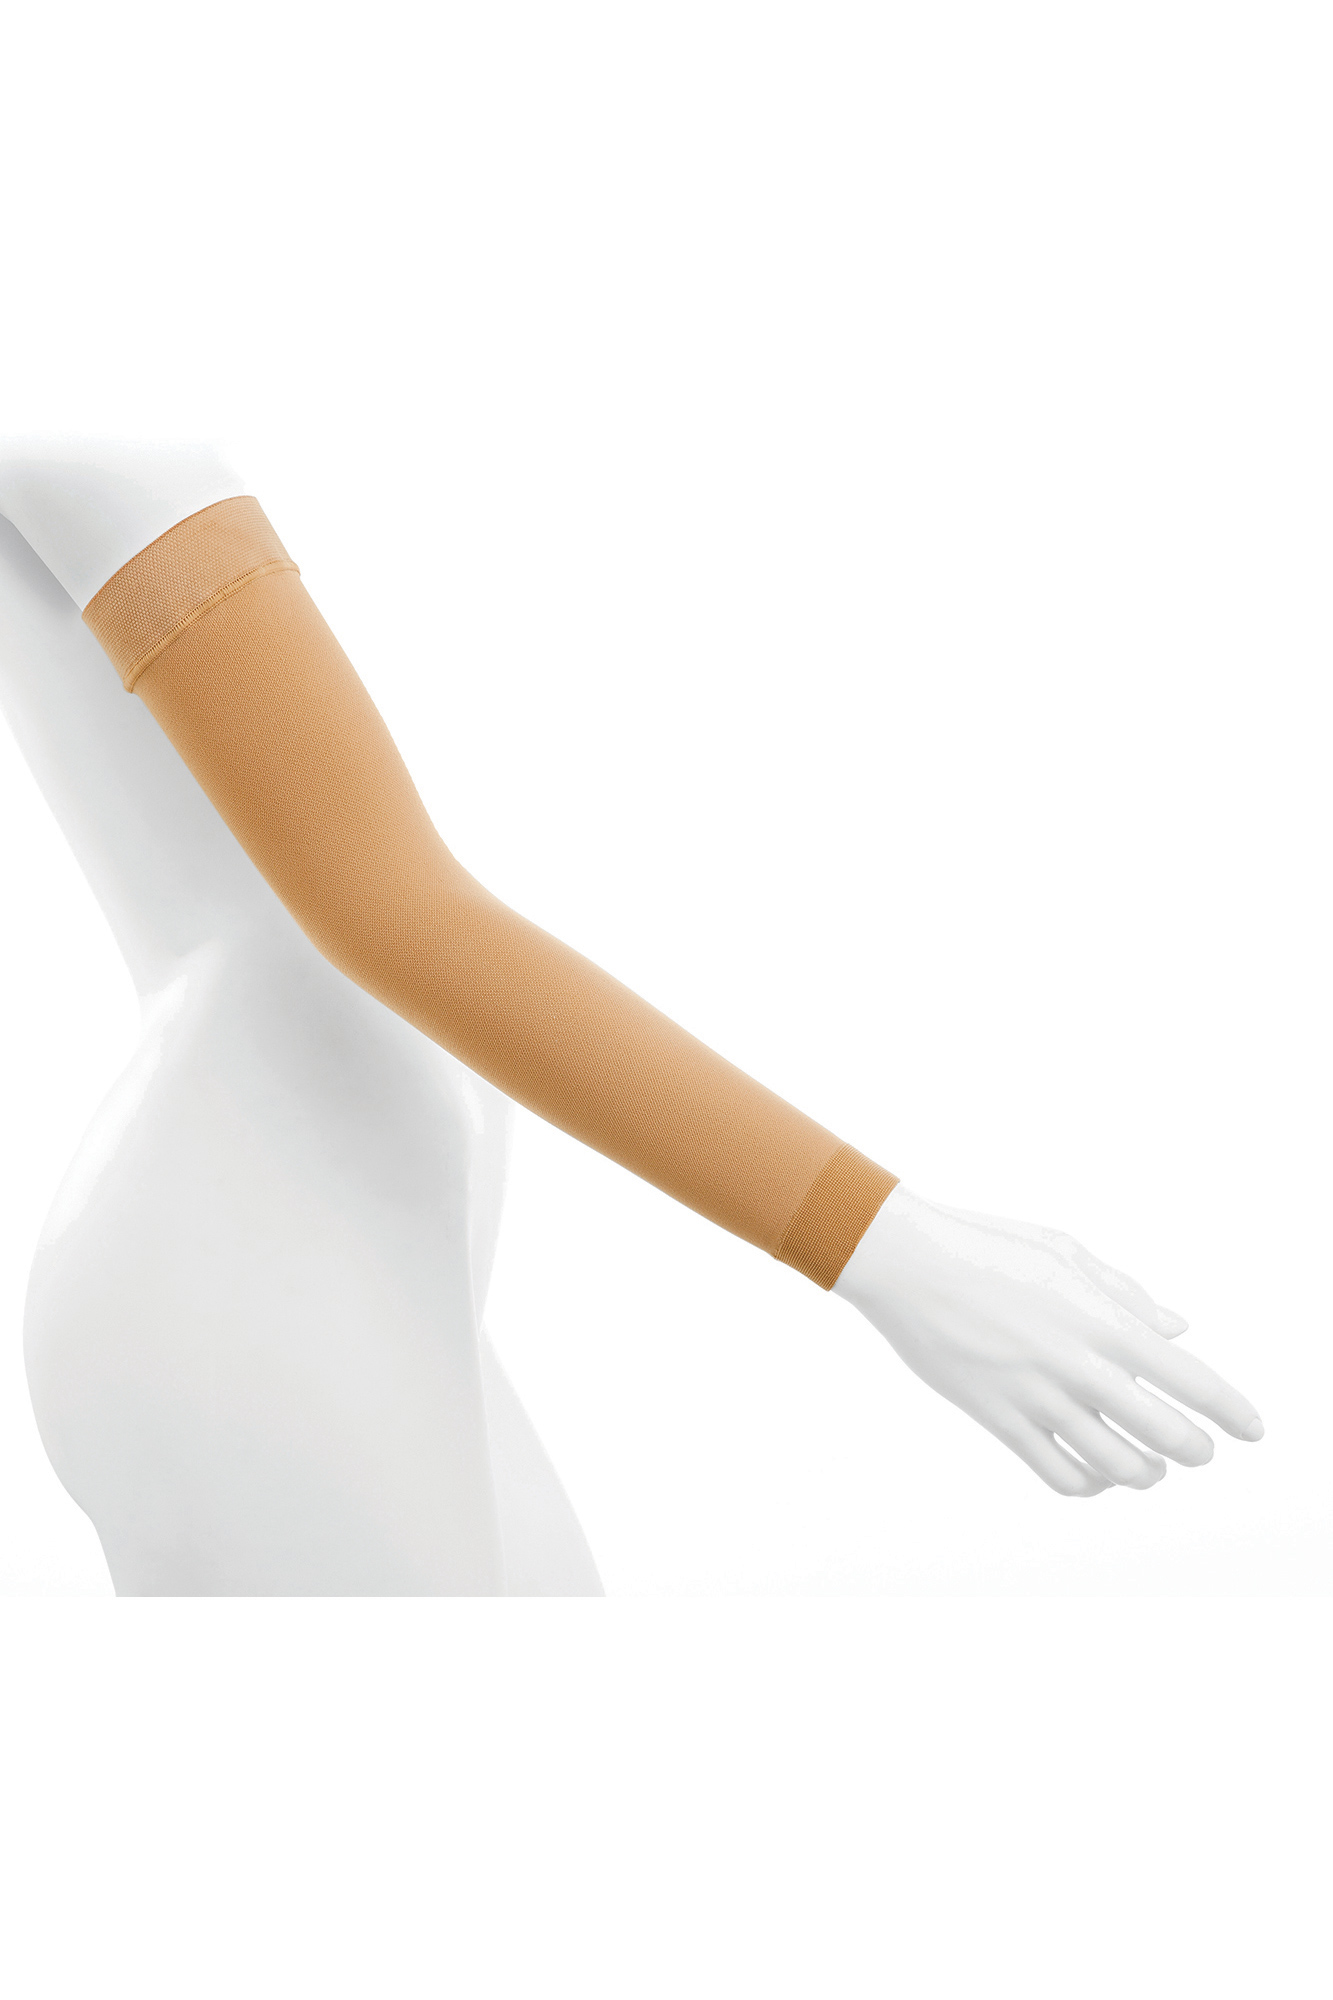 Acti Lymph Class 1 Arm Sleeve 18-21 mmHg Sand Extra Large Standard